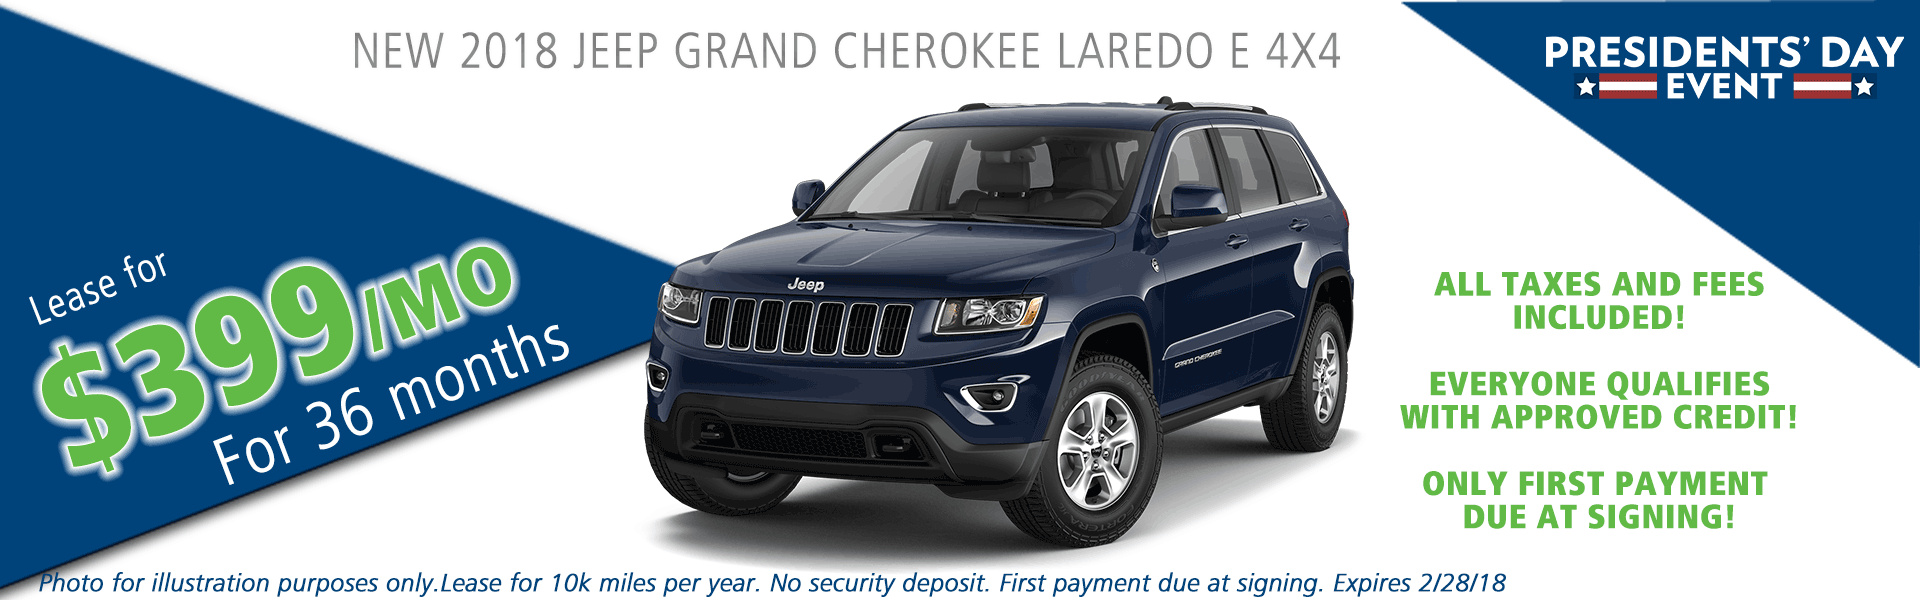 2018 jeep grand cherokee laredo 4x4 carright auto moon twp vehicle specials and sales